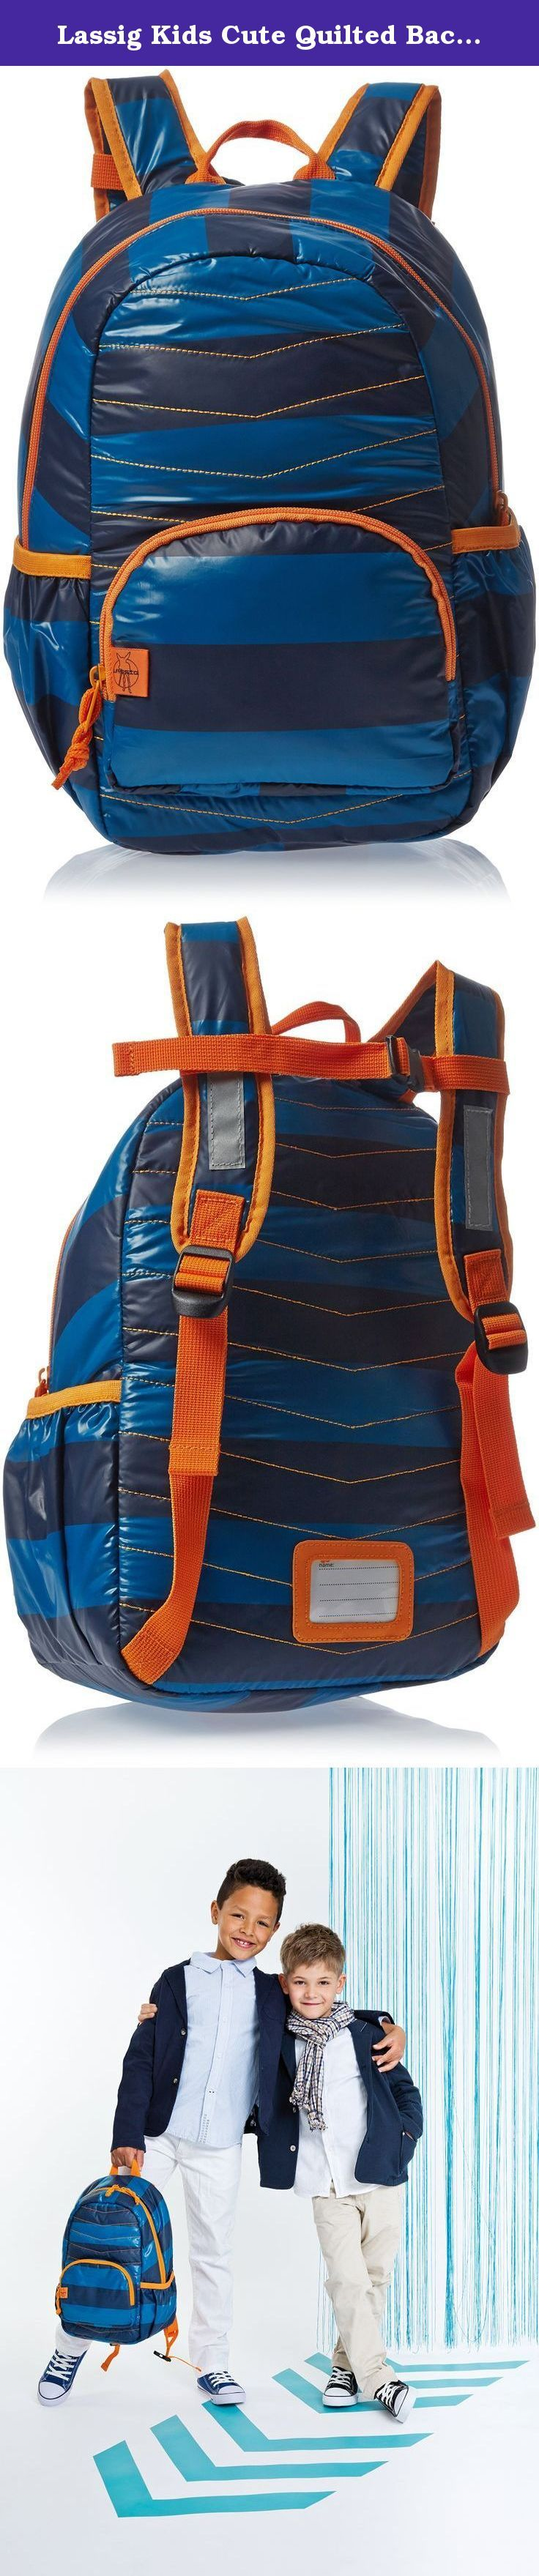 """Lassig Kids Cute Quilted Backpack Big Pre-School Kindergarten Bag with chest strap, name badge and drink Bottle Holder, Striped Petrol/Blue. The appearance of the three children's backpacks from the """"Quilted"""" Line is definitely not low-key. Loud colors, eye-catching contrastive seams and cool patterns make them a must-have accessory for all little trendsetters. They are made of polyester and are extremely light weight."""